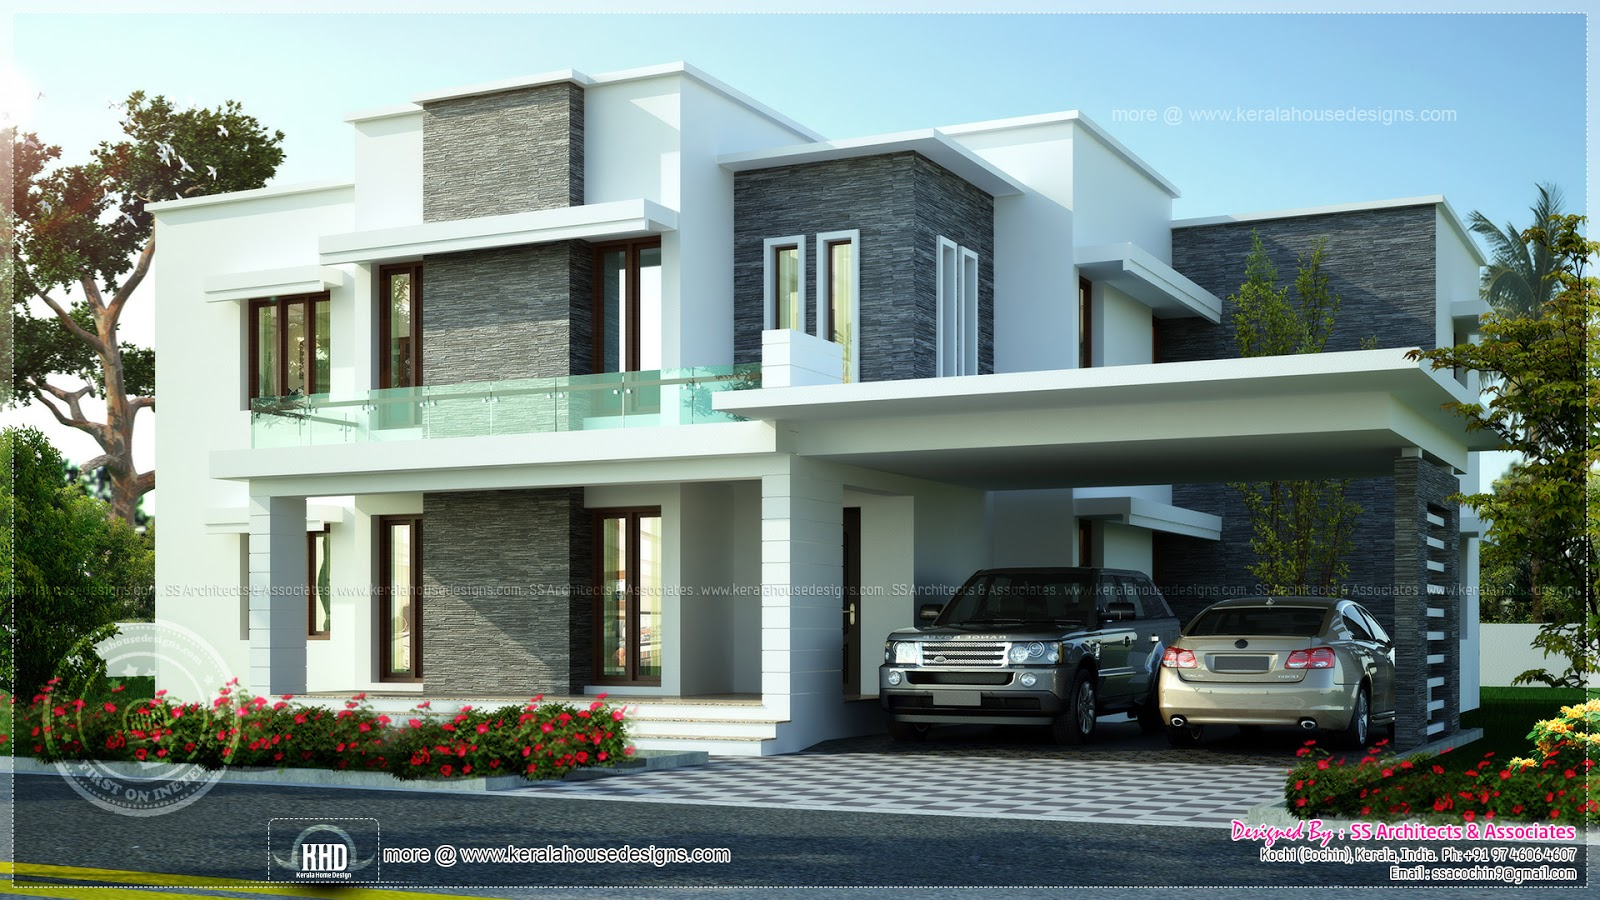 3600 sq ft contemporary villa exterior elevation kerala for Modern villa exterior design